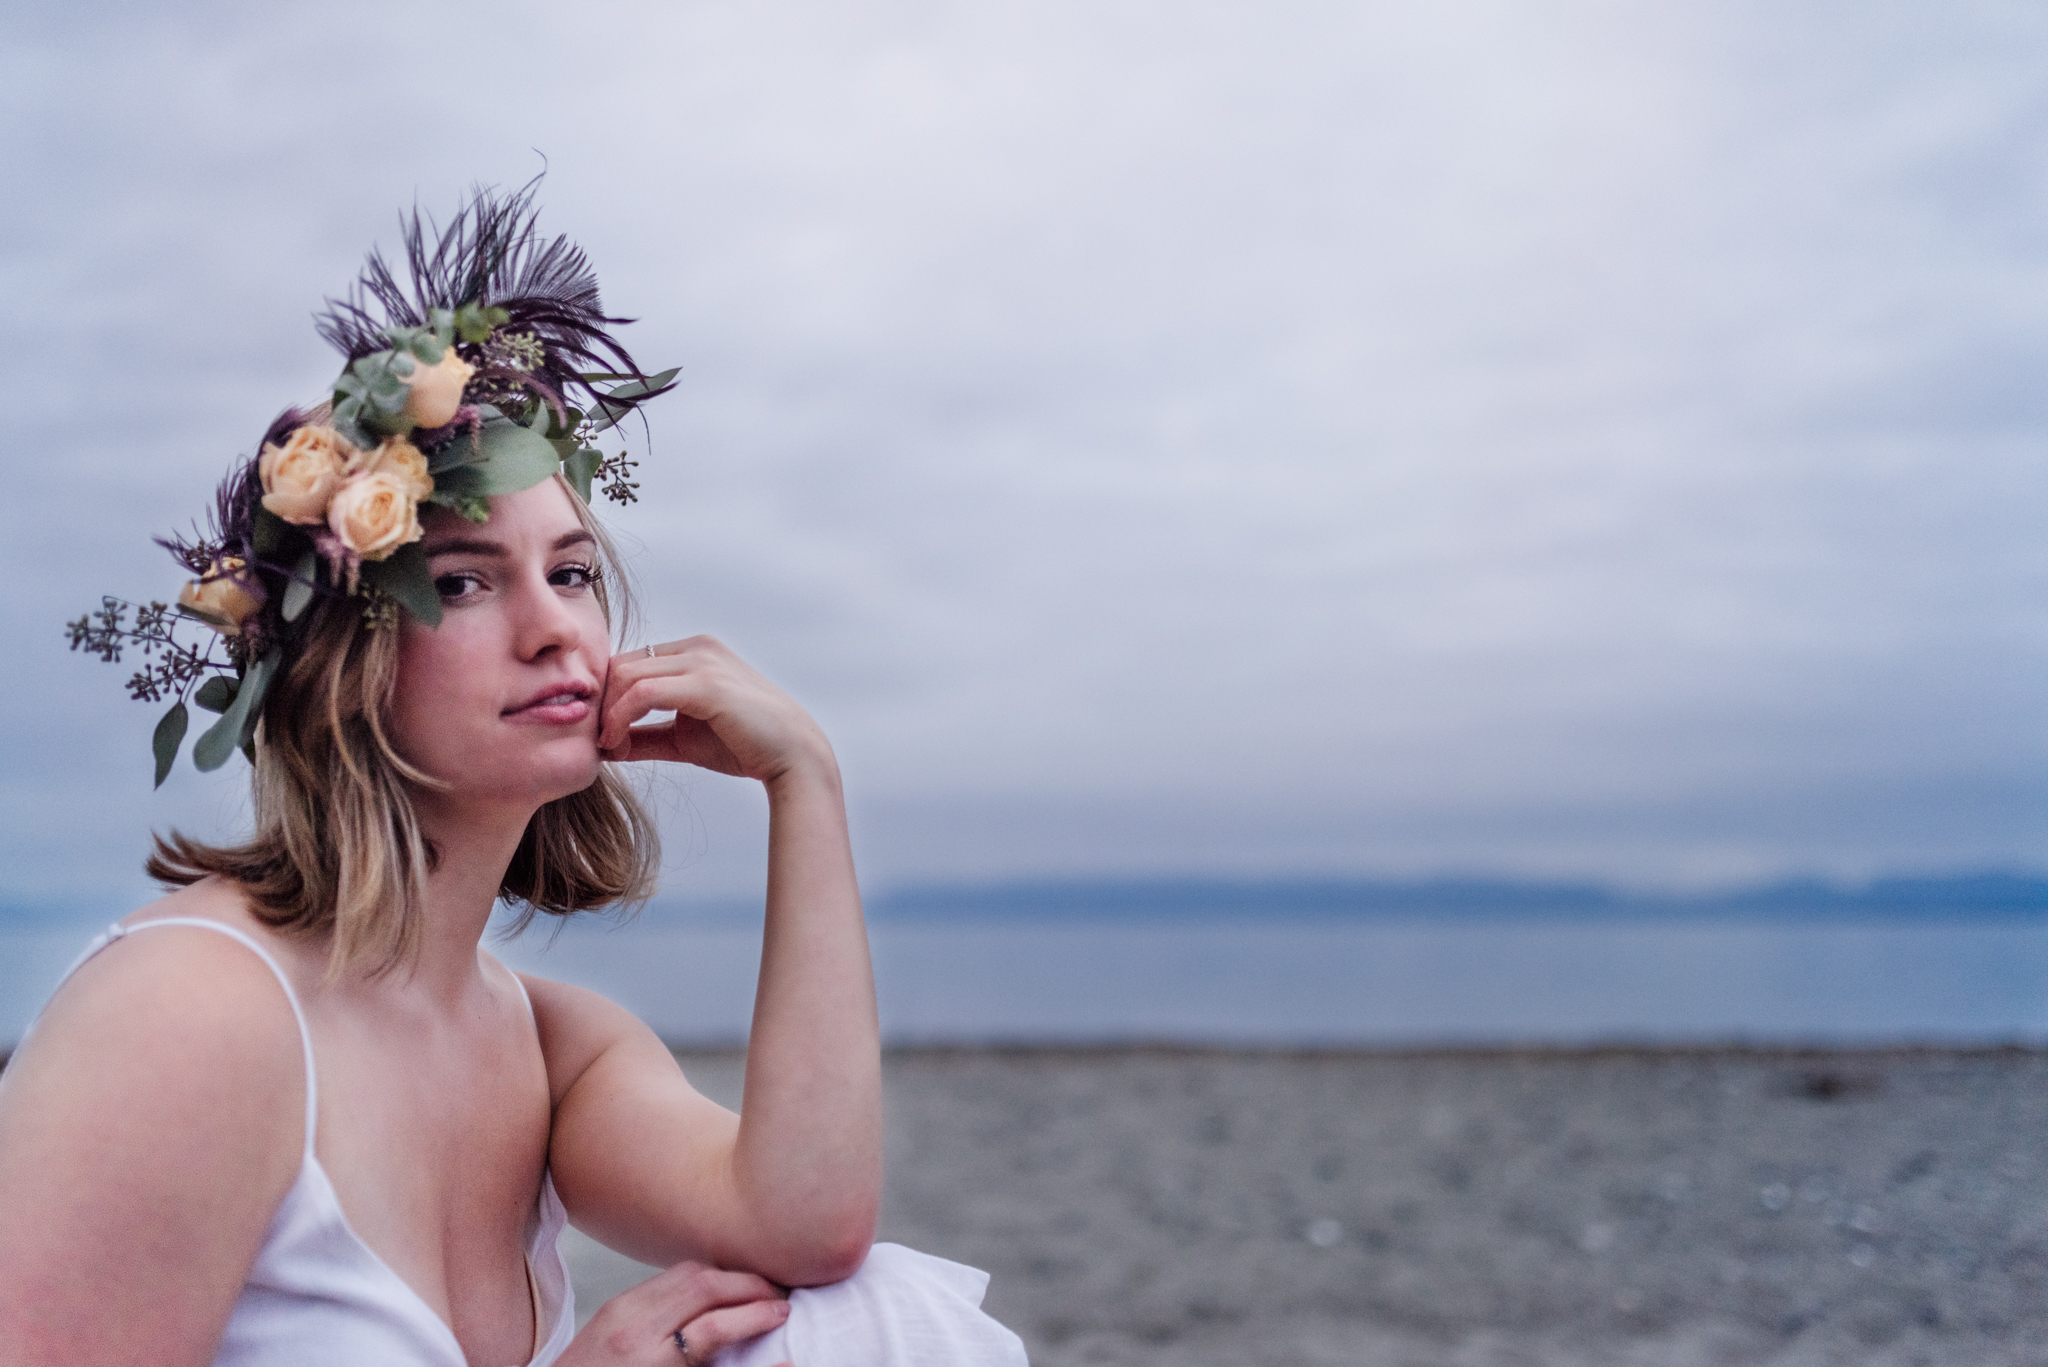 Woman at beach wearing flower crown for lifestyle photoshoot